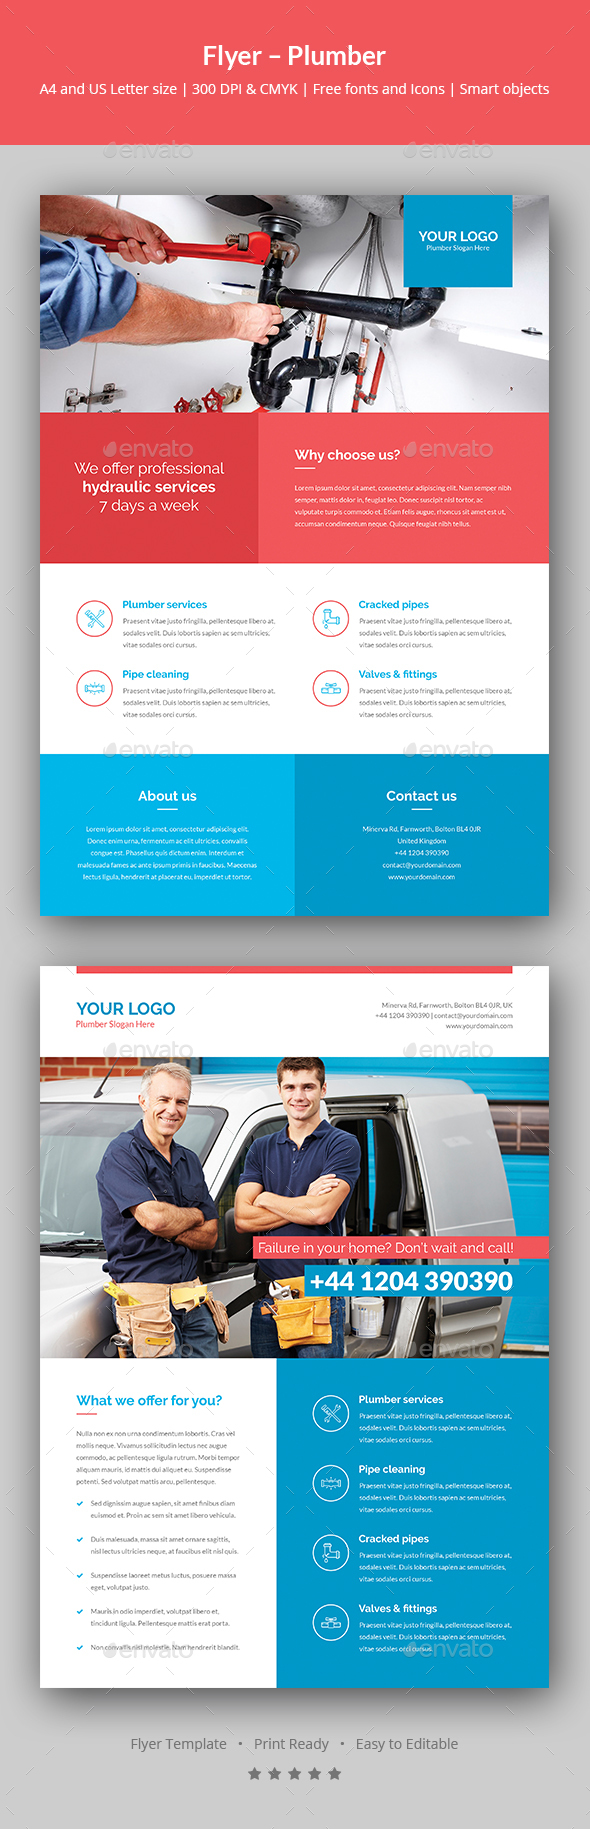 Flyer – Plumber - Corporate Flyers